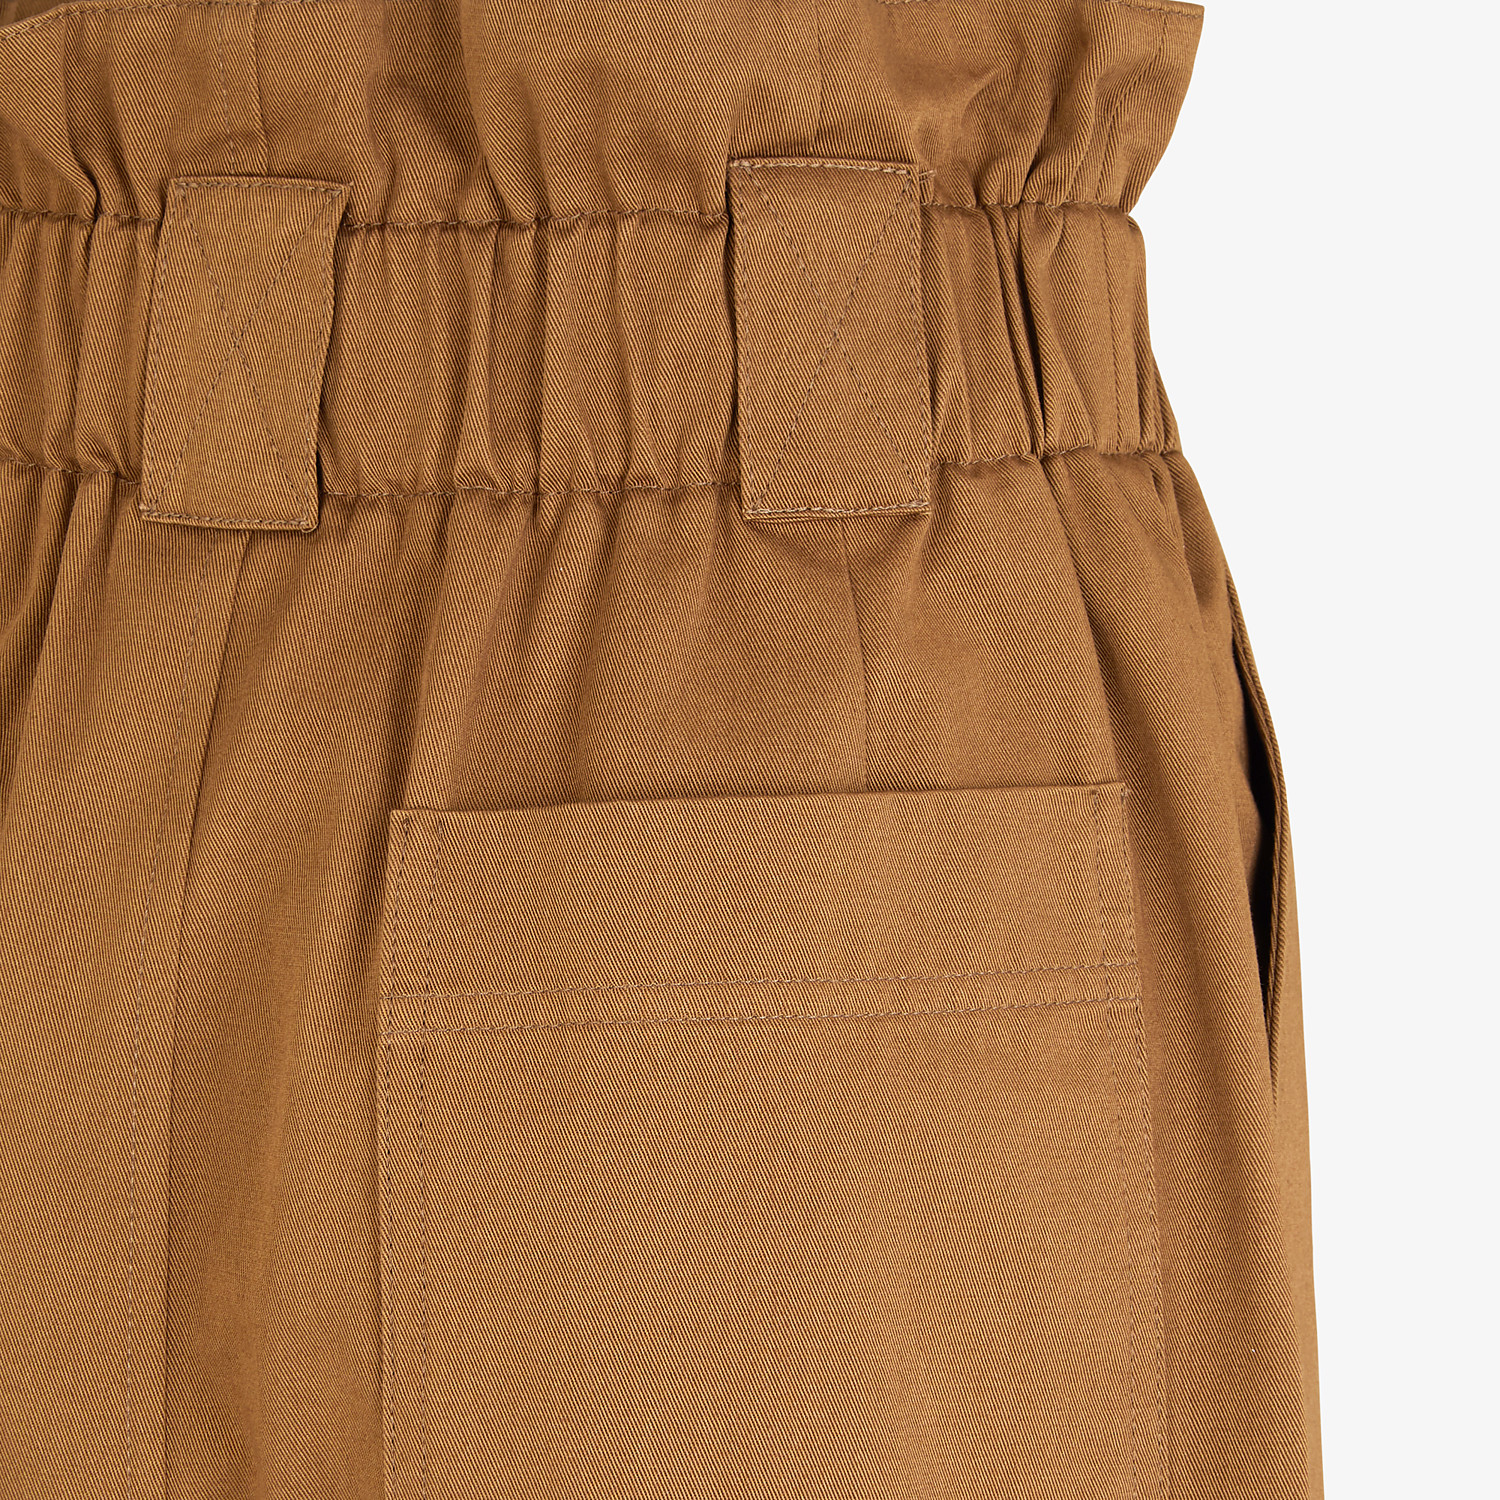 FENDI TROUSERS - Brown gabardine trousers - view 3 detail